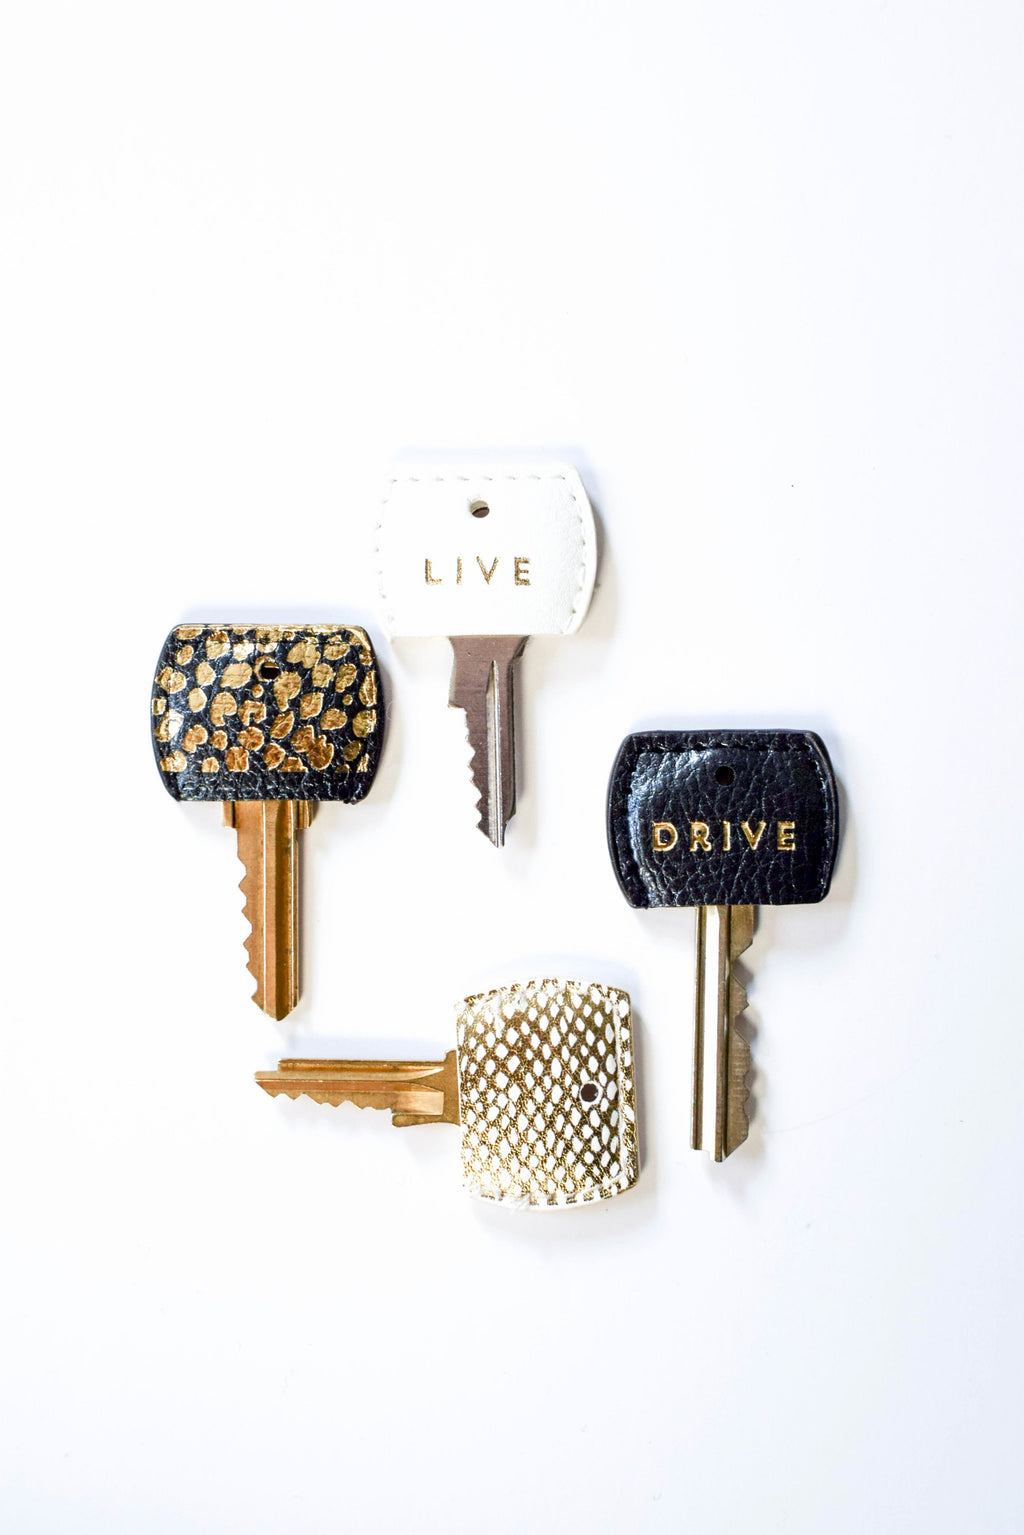 Live to Drive - Key Covers - Mint Pop Shop